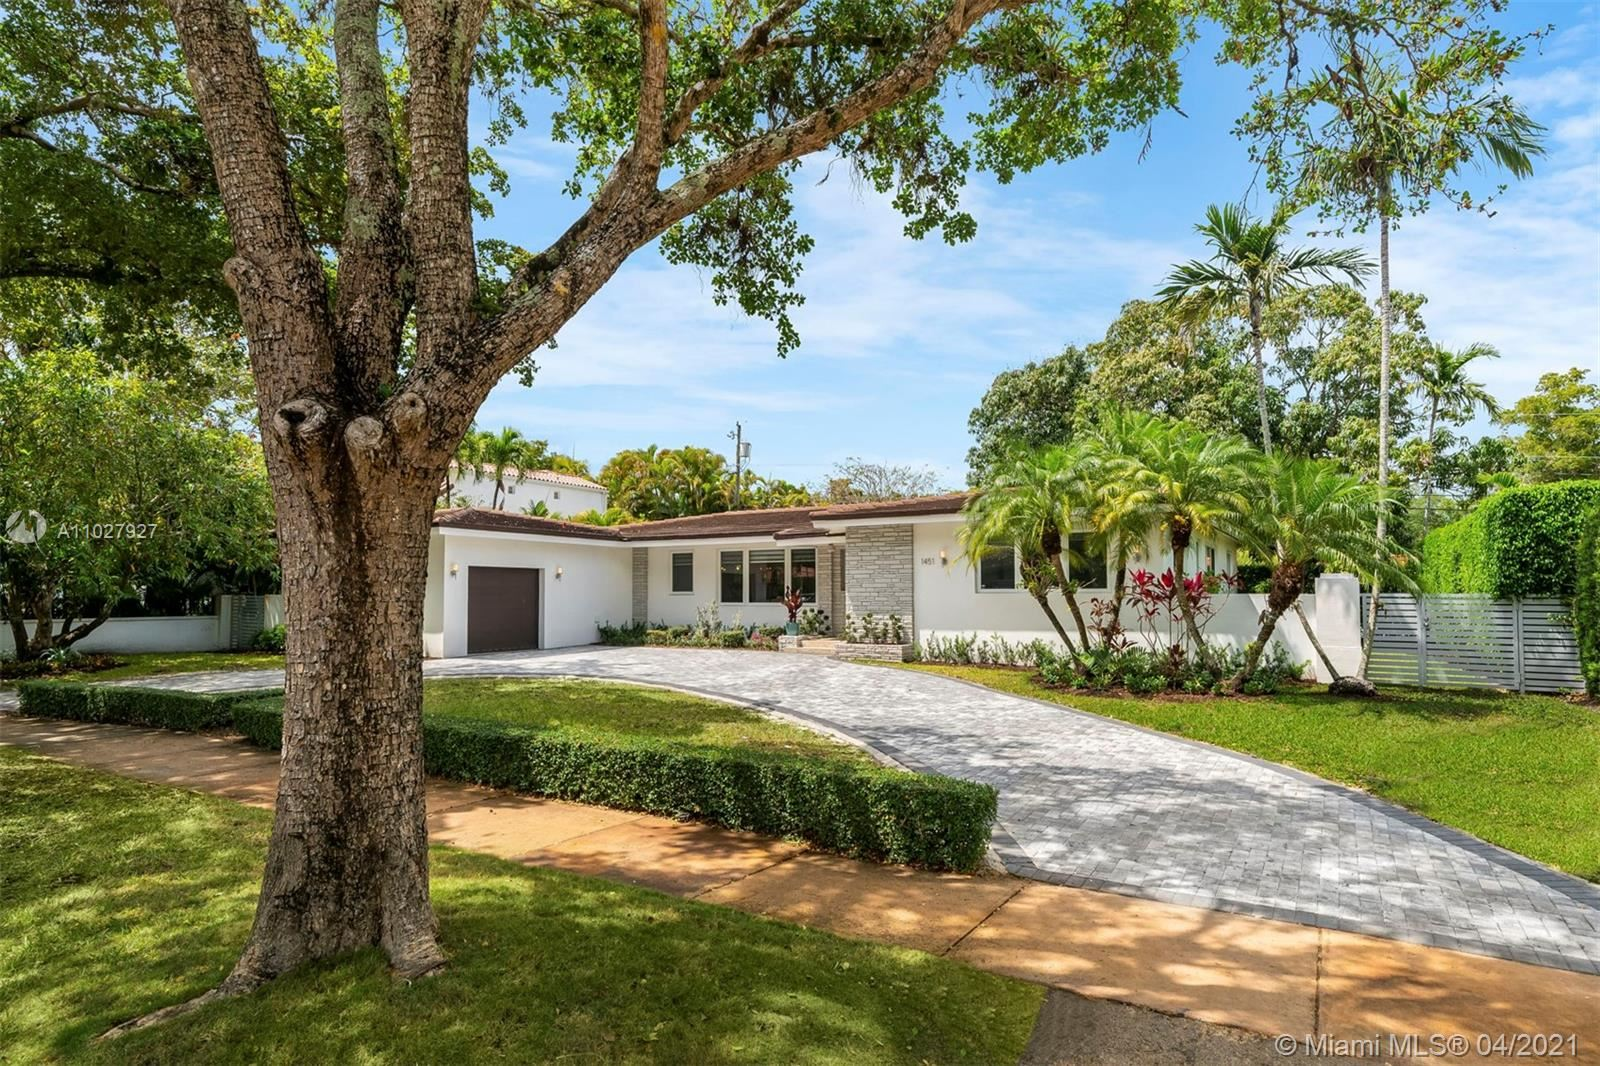 Photo of 1451 Trillo Ave, Coral Gables, FL 33146 (MLS # A11027927)